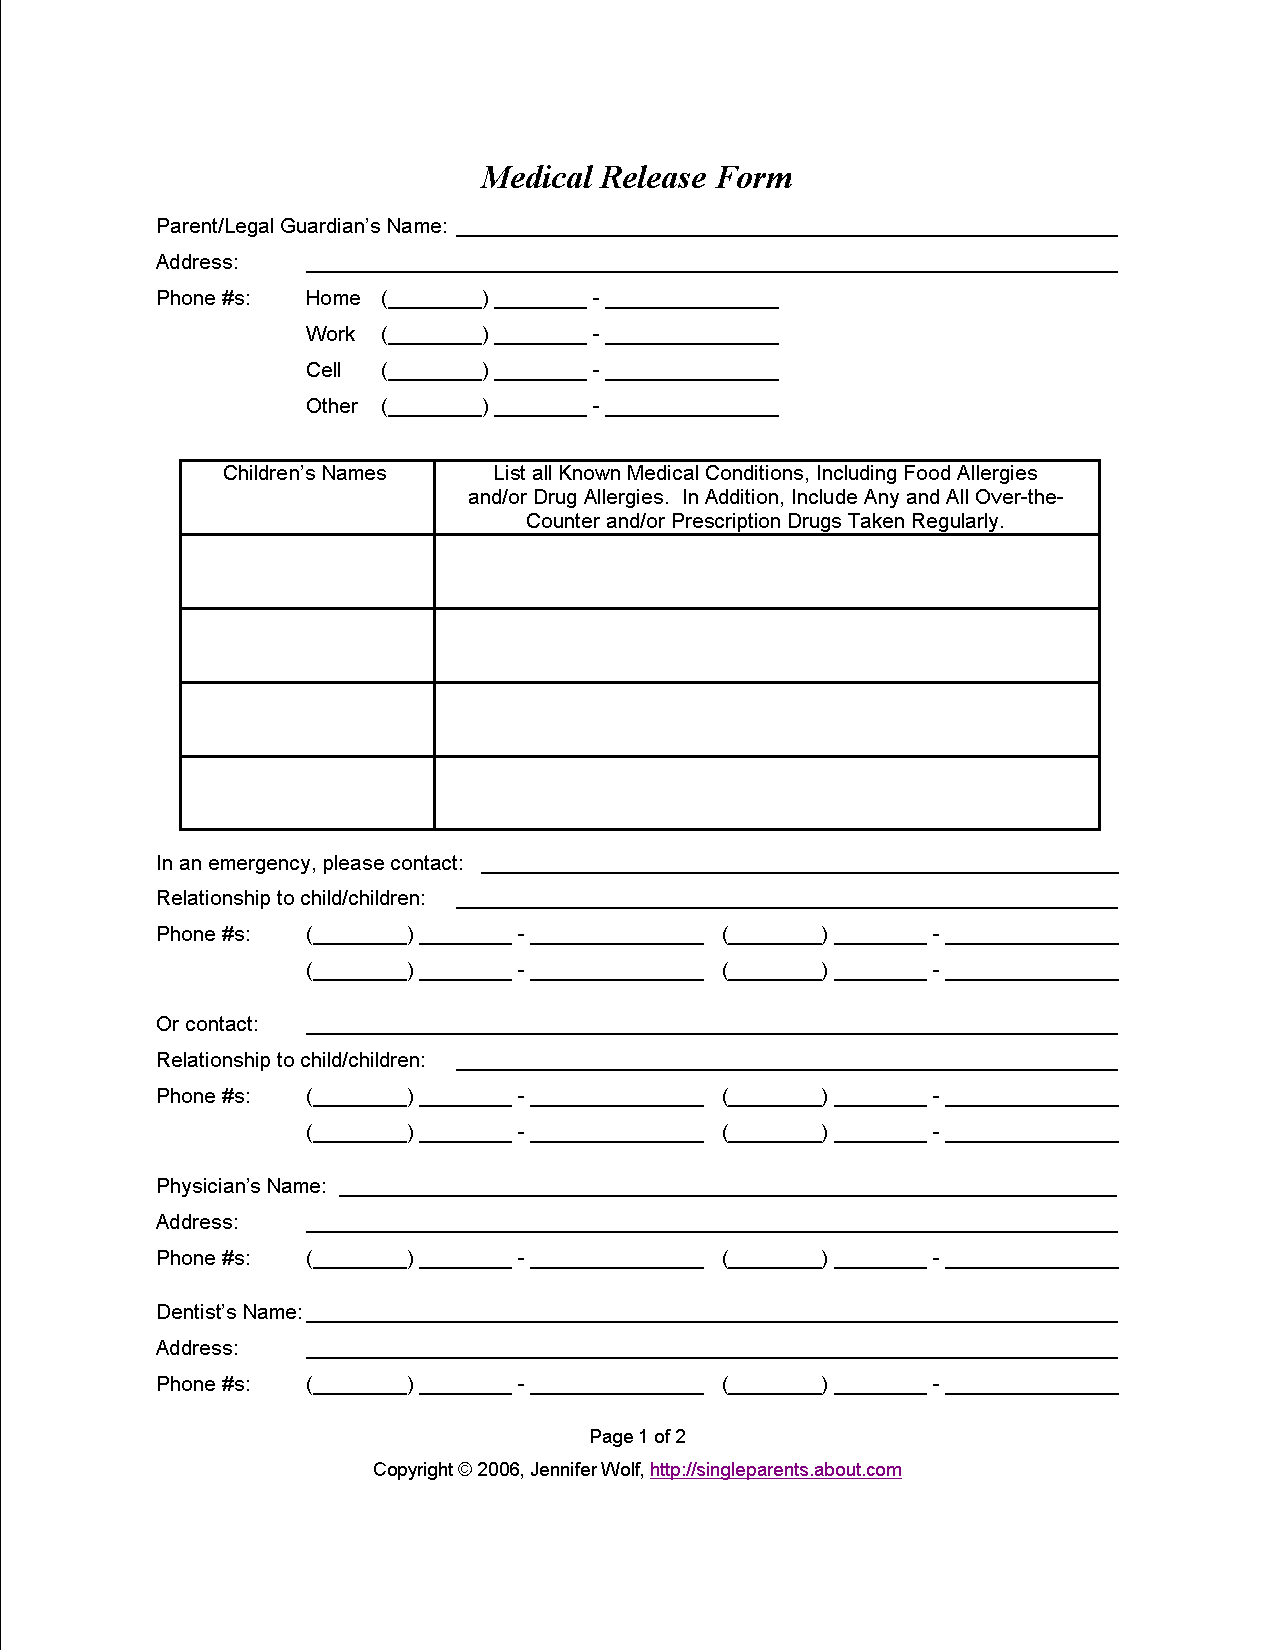 Do You Have A Medical Release Form For Your Kids? | Travel - Free Printable Caregiver Forms